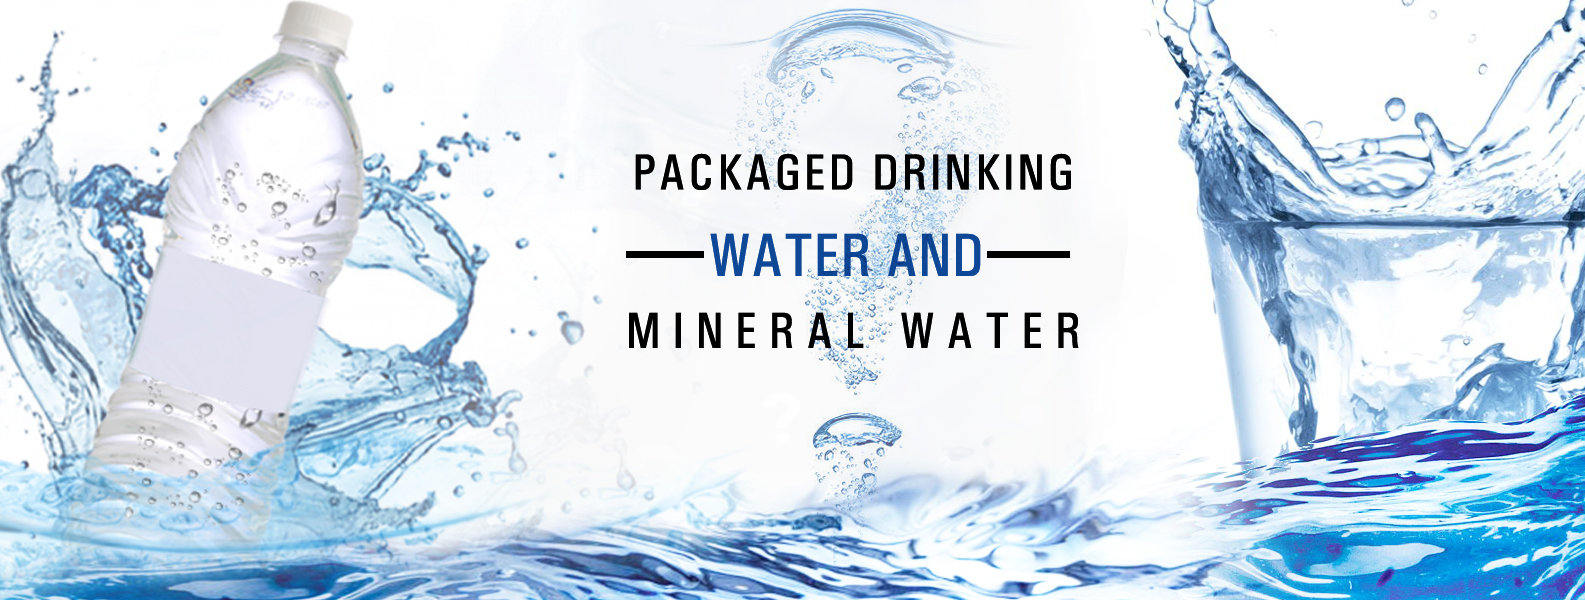 FREQUENTLY ASKED QUESTIONS ON PACKAGED DRINKING WATER AND MINERAL WATER